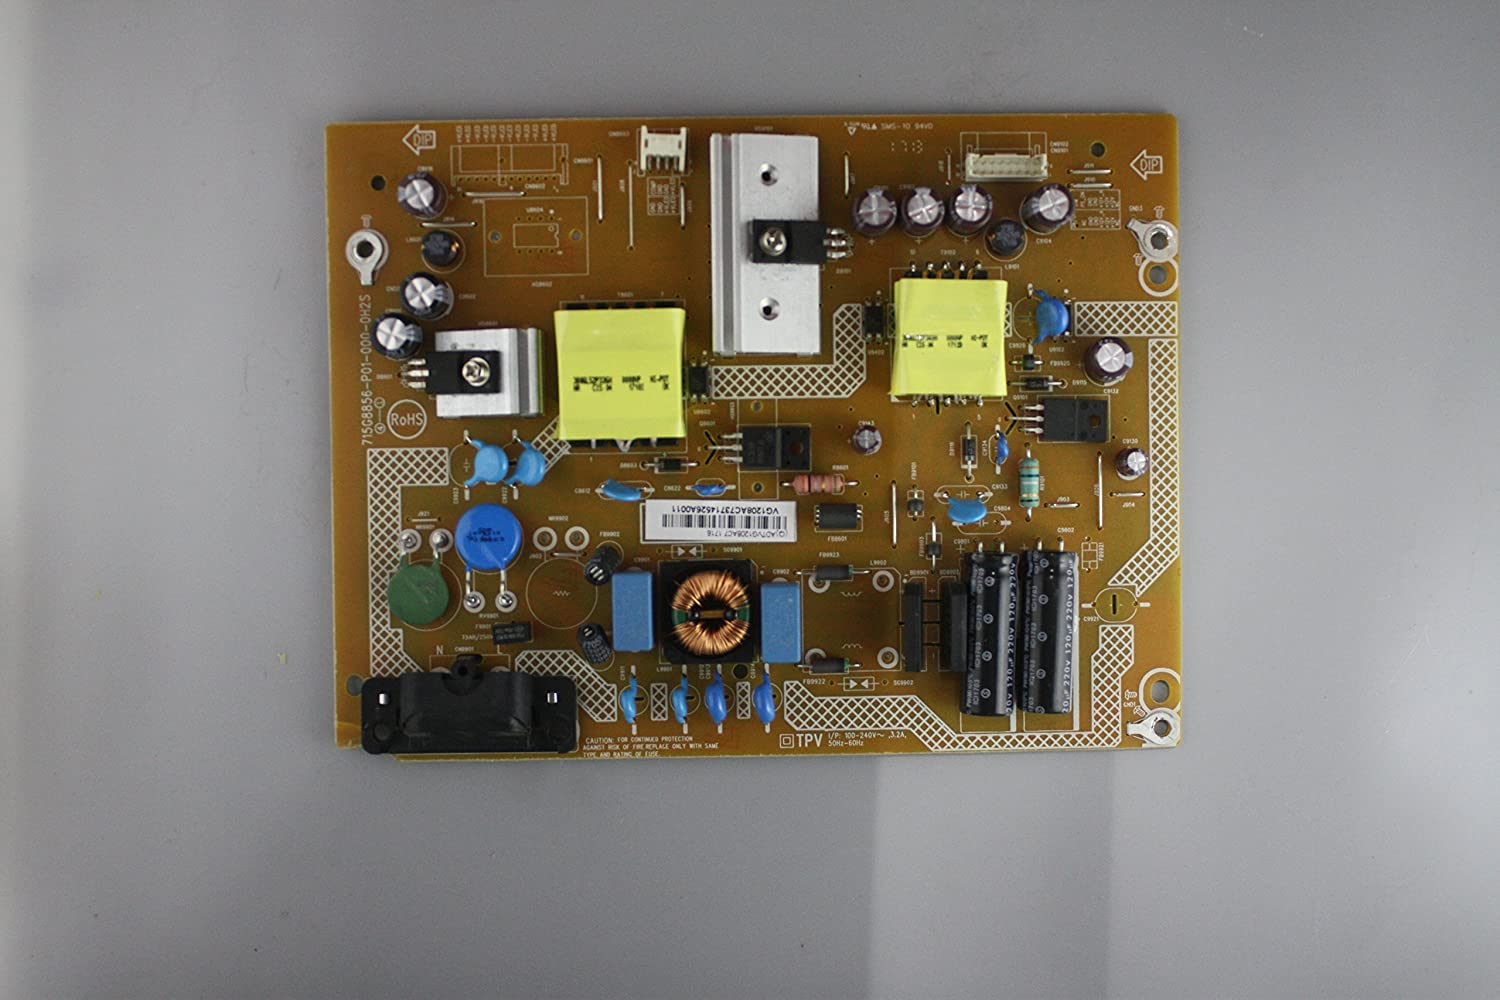 39 D39F-E1 LTTWVLAT ADTVG1208AC7 Power Supply Board Unit